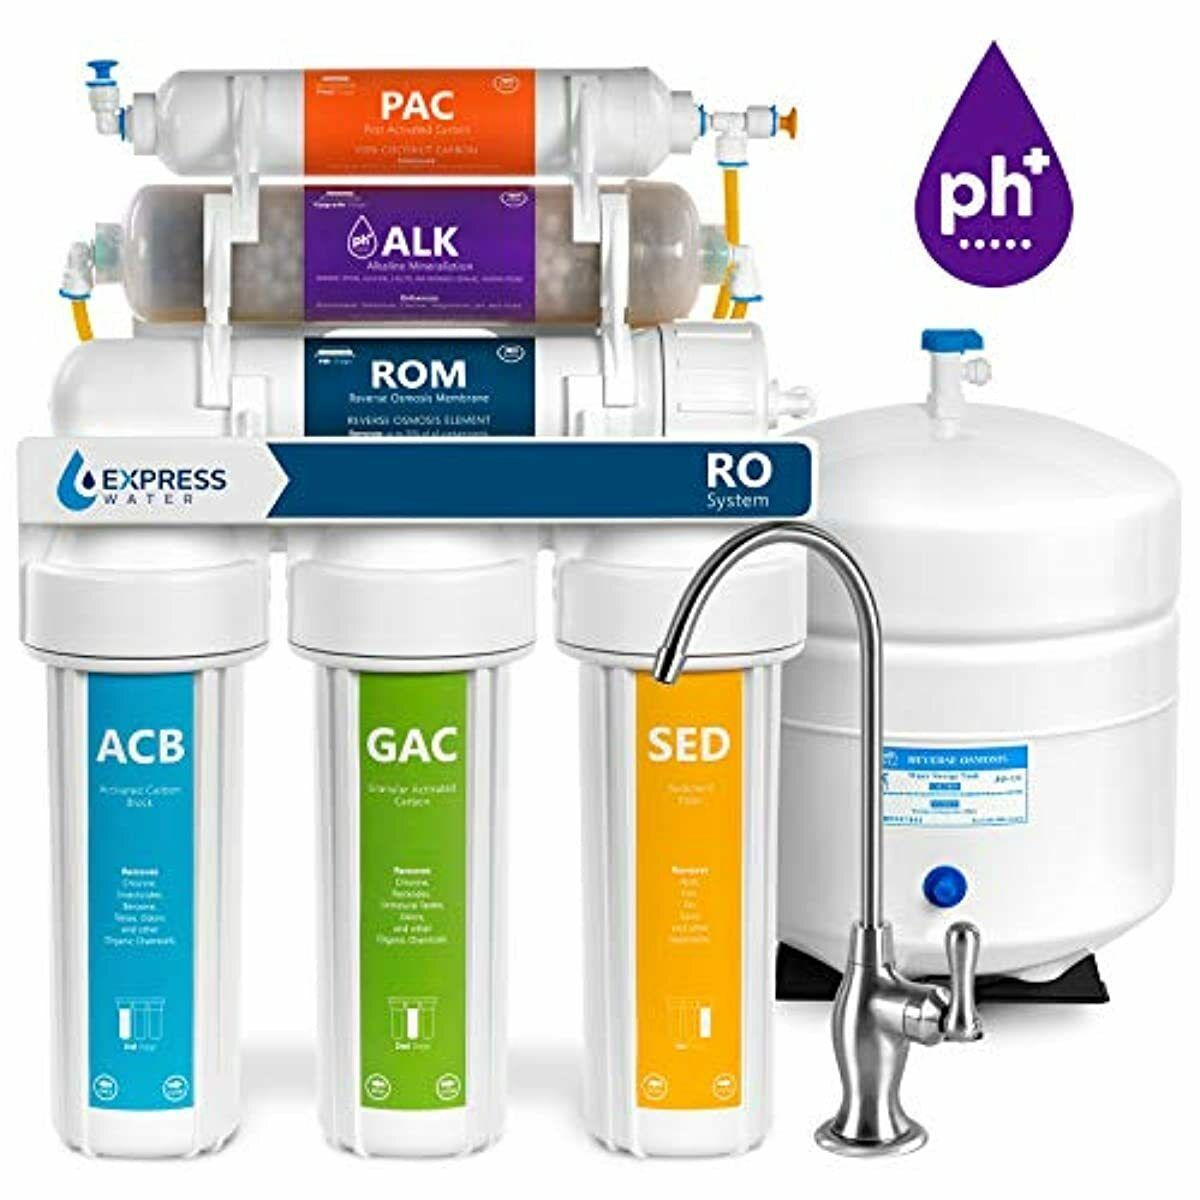 Express Water Reverse Osmosis Alkaline Water Filtration Syst